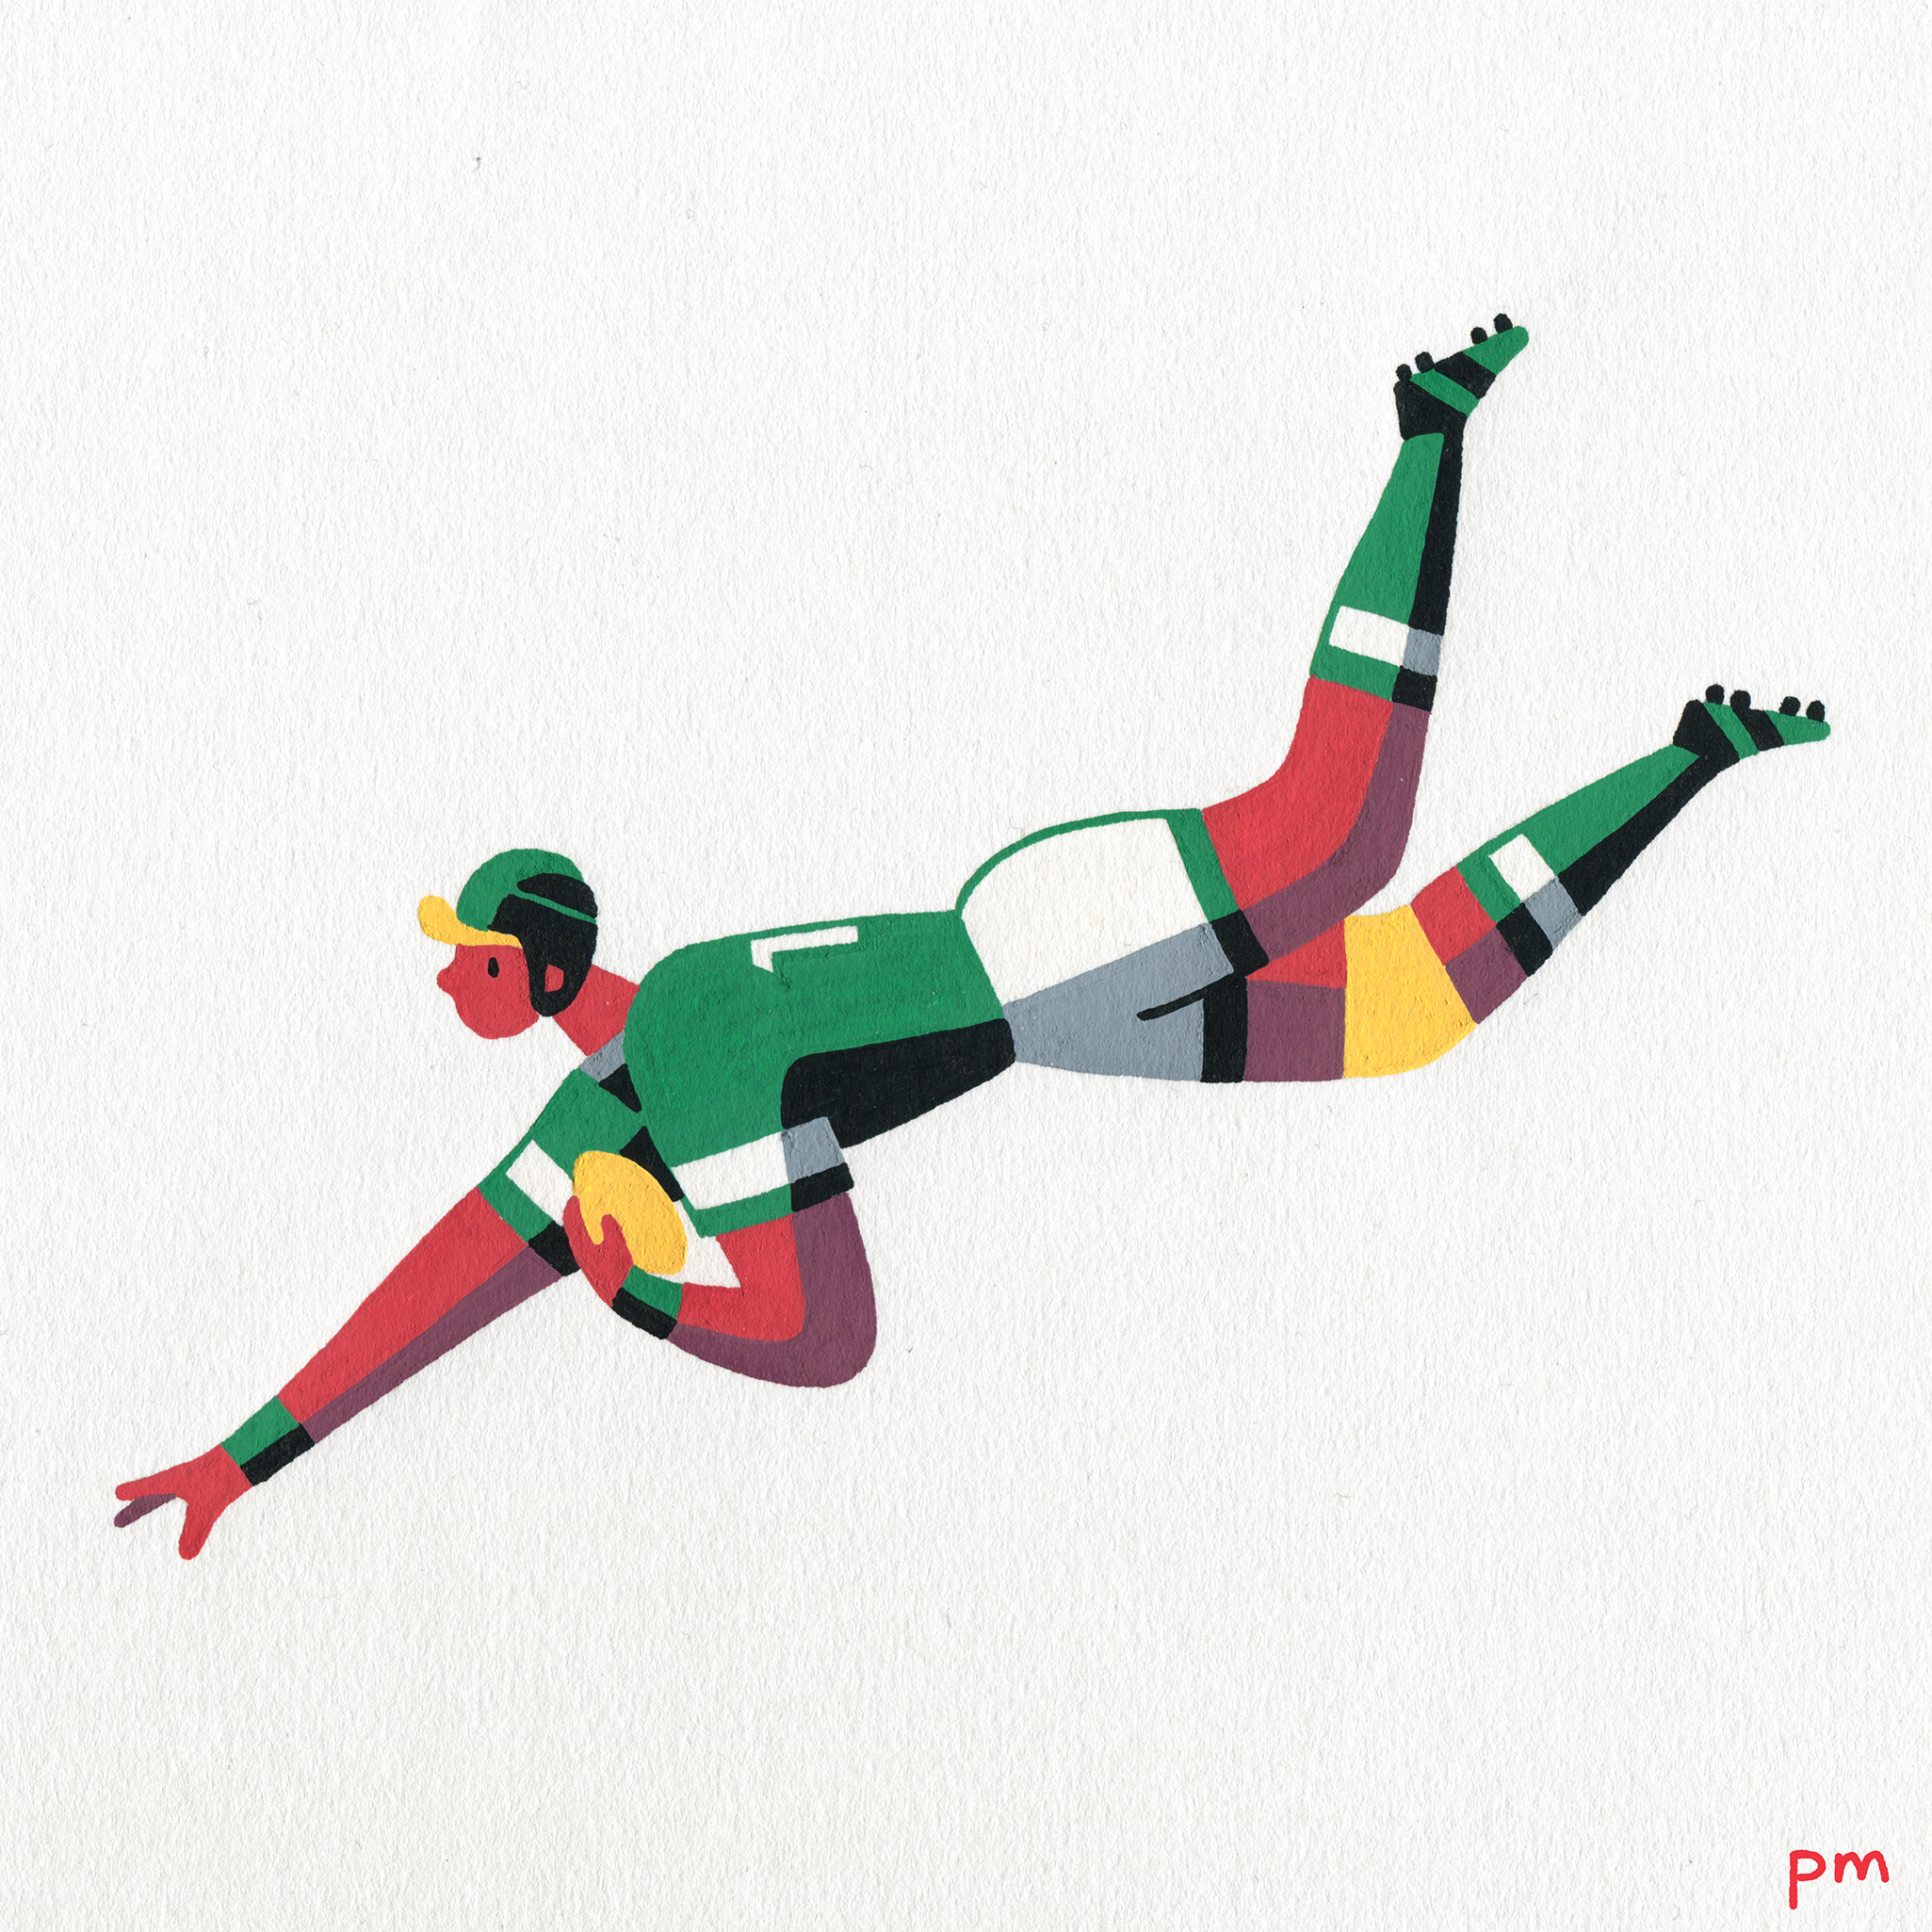 This is a hand painted illustration of a rugby player about to score a try and was made for my illustrated sports series